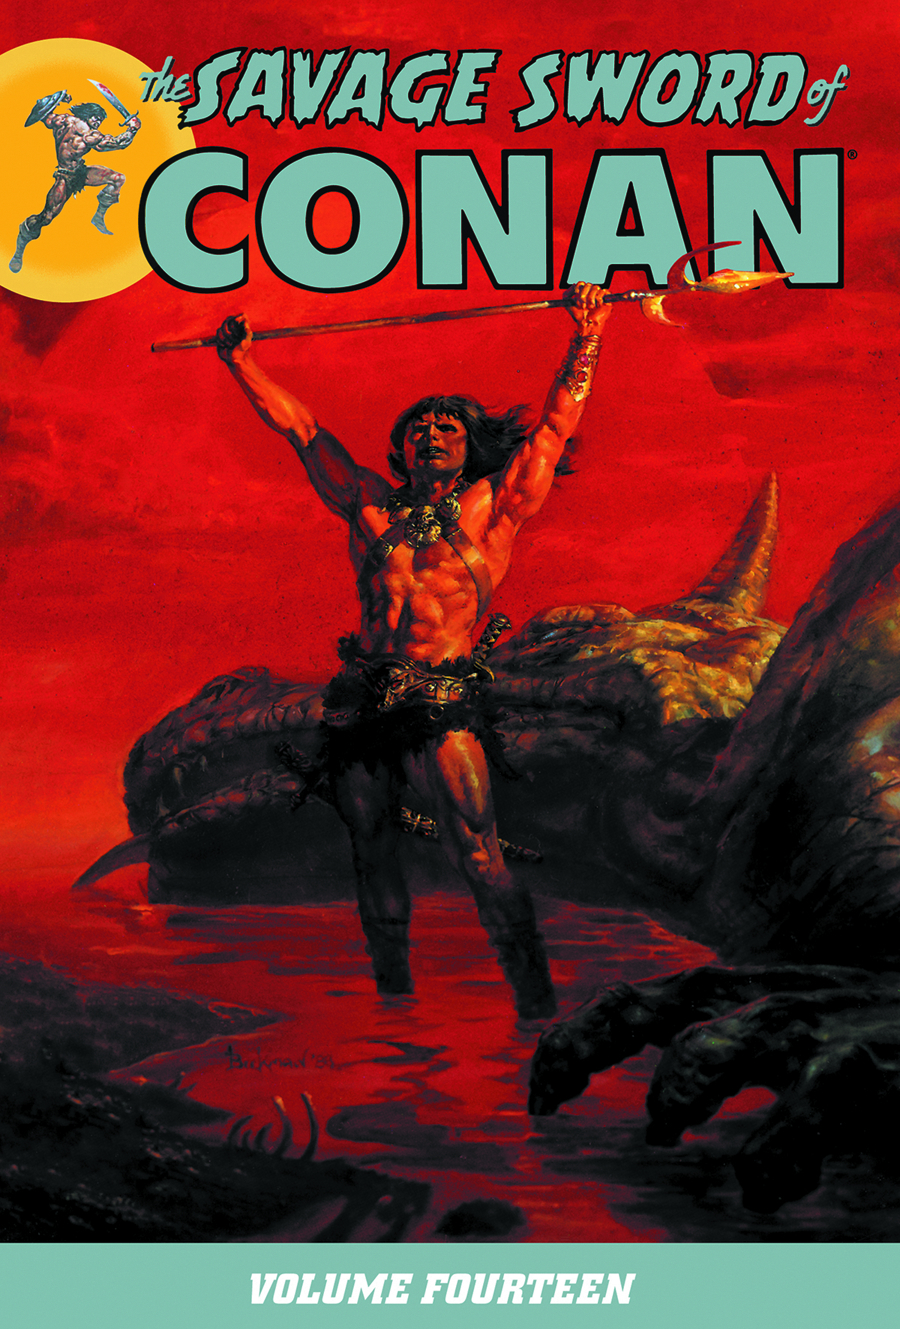 SAVAGE SWORD OF CONAN TP VOL 14